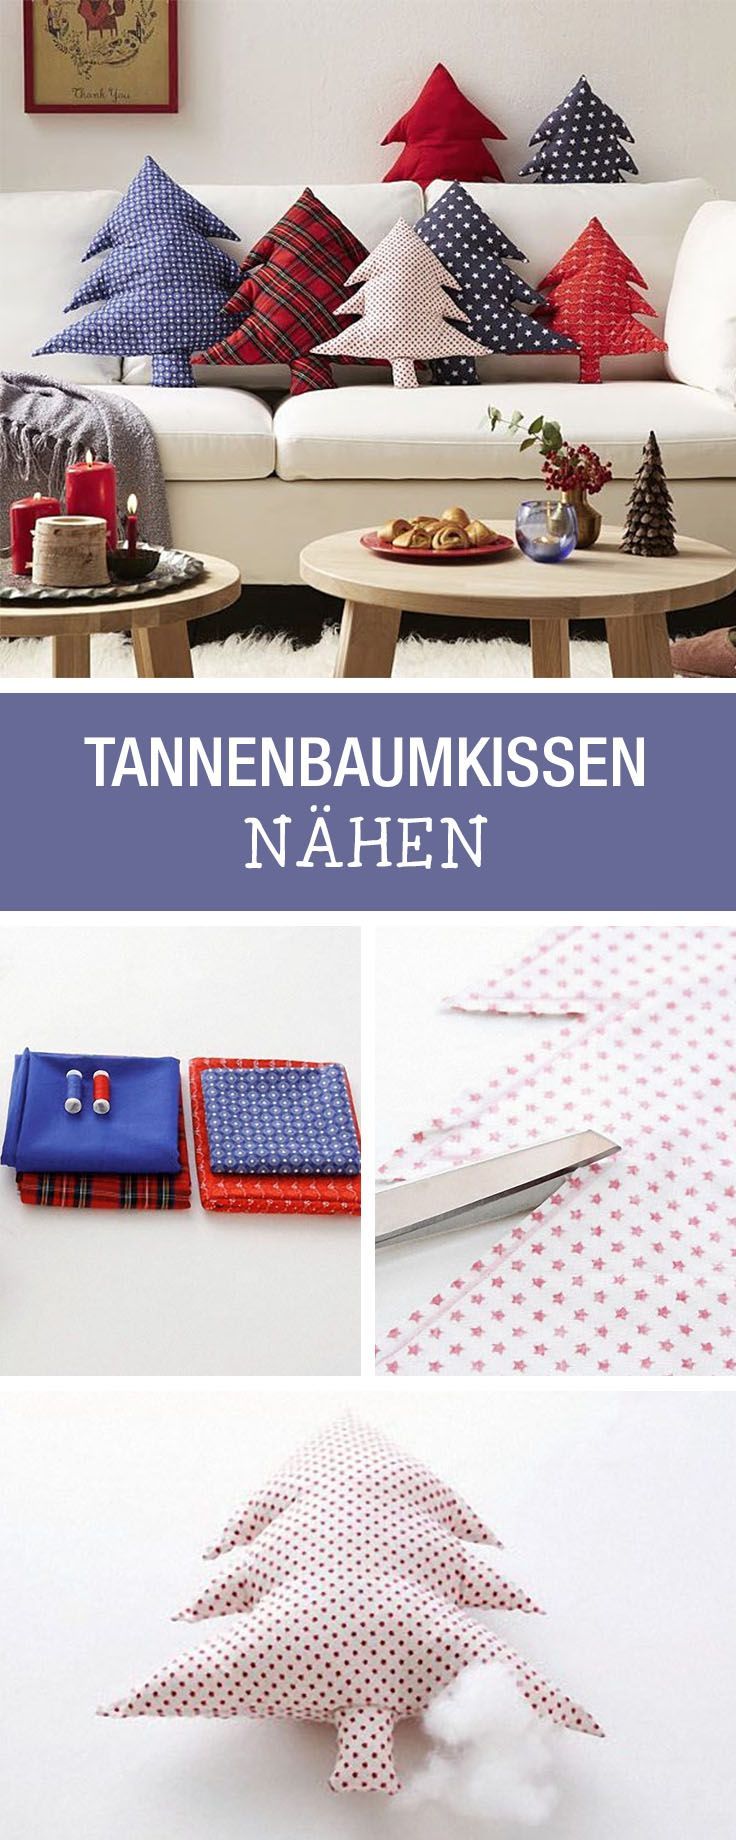 DIY-Anleitung: Weihnachtliches Kissen als Tannenbaum nähen für Deine Wohndeko / DIY tutorial: sewing christmassy pillow as pine tree for your home decor via DaWanda.com